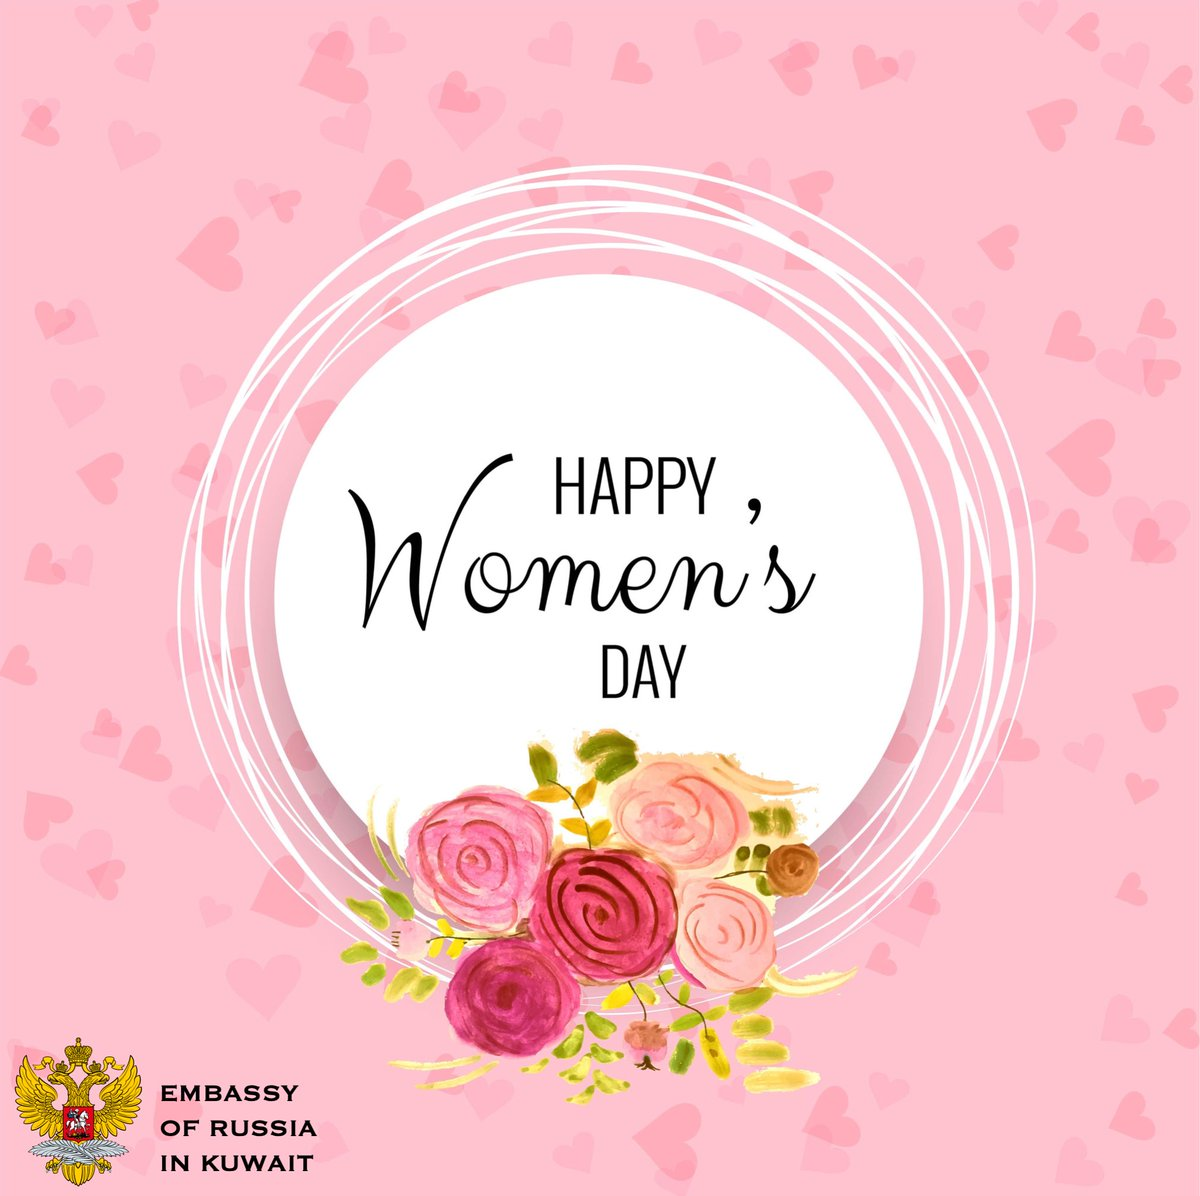 Warmest congratulations and best wishes on the occasion of the International Women's Day from the Embassy of Russia in Kuwait! We are proud that this global holiday originates from #Russia   #8марта #международныйженскийдень #8march #internationalwomensday #IWD2020pic.twitter.com/T7c978vZNJ – at Embassy Of The Russian Federation In Kuwait